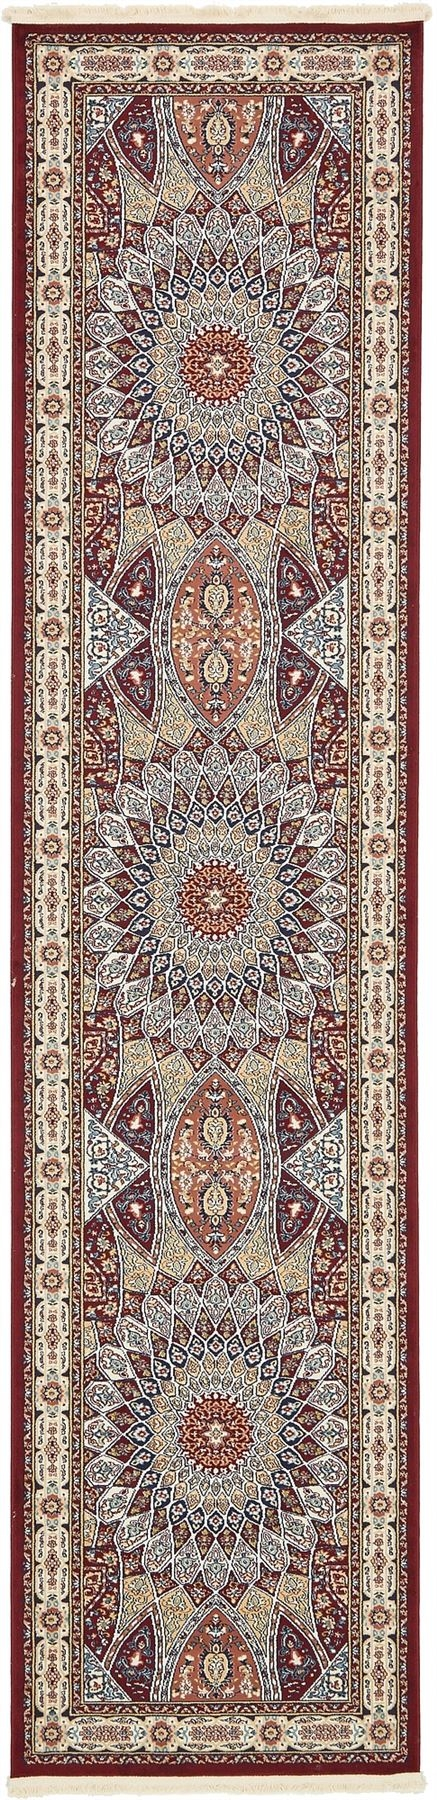 Country Medallion Style Rug Traditional Floral Carpets Botanical Pertaining To Traditional Carpets (Image 1 of 15)